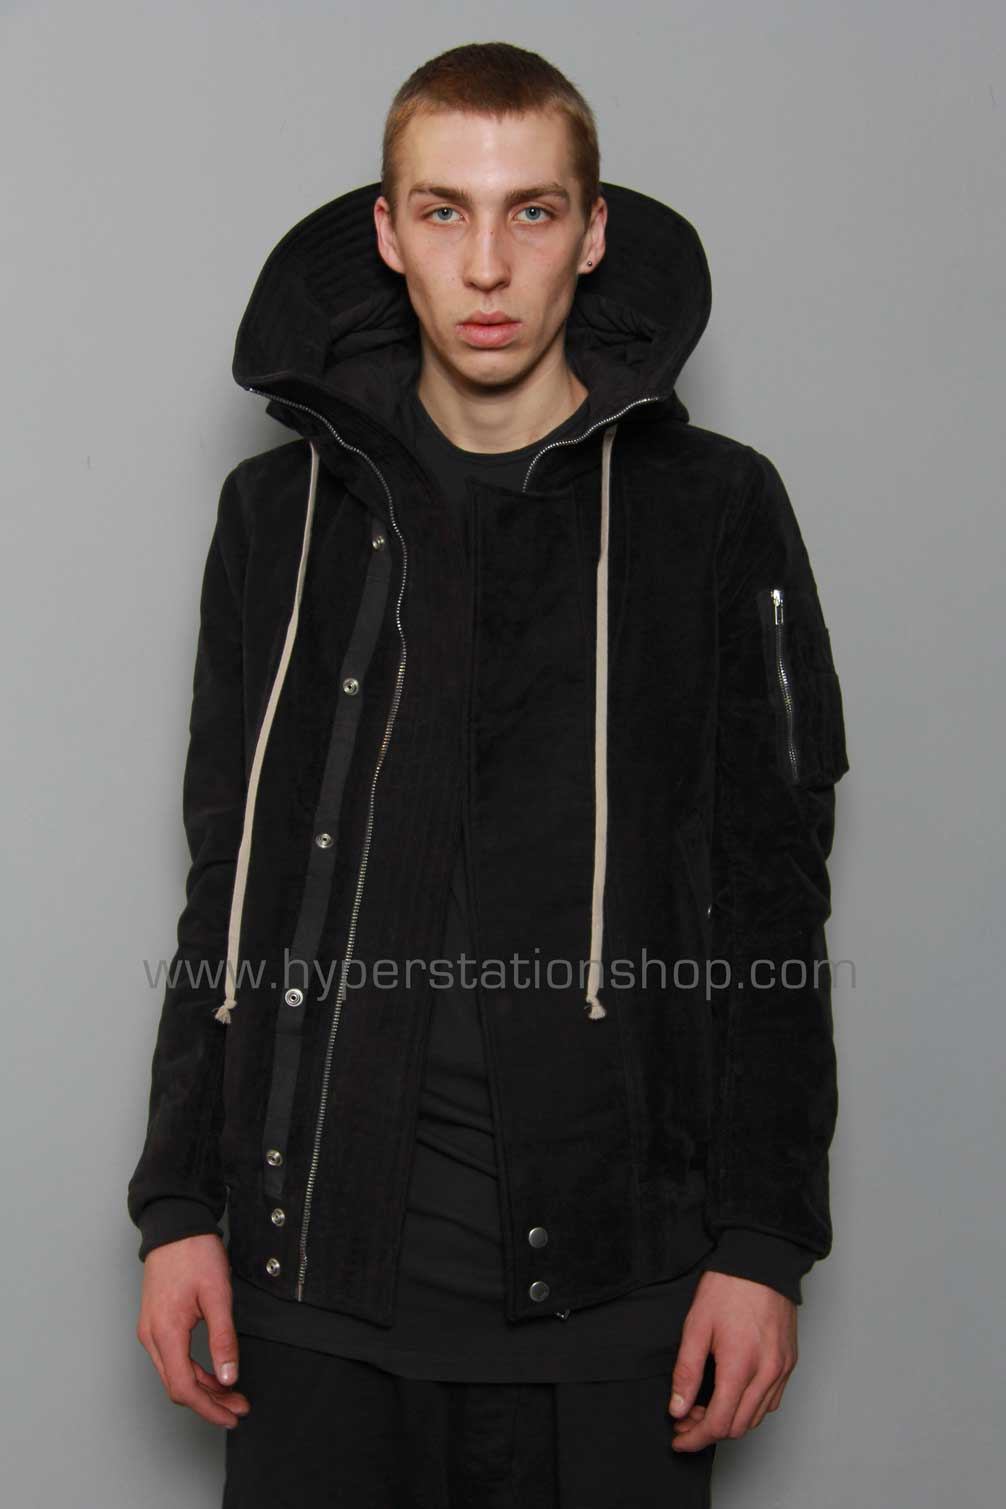 DRKSHDW Hooded Bomber Jacket, Black